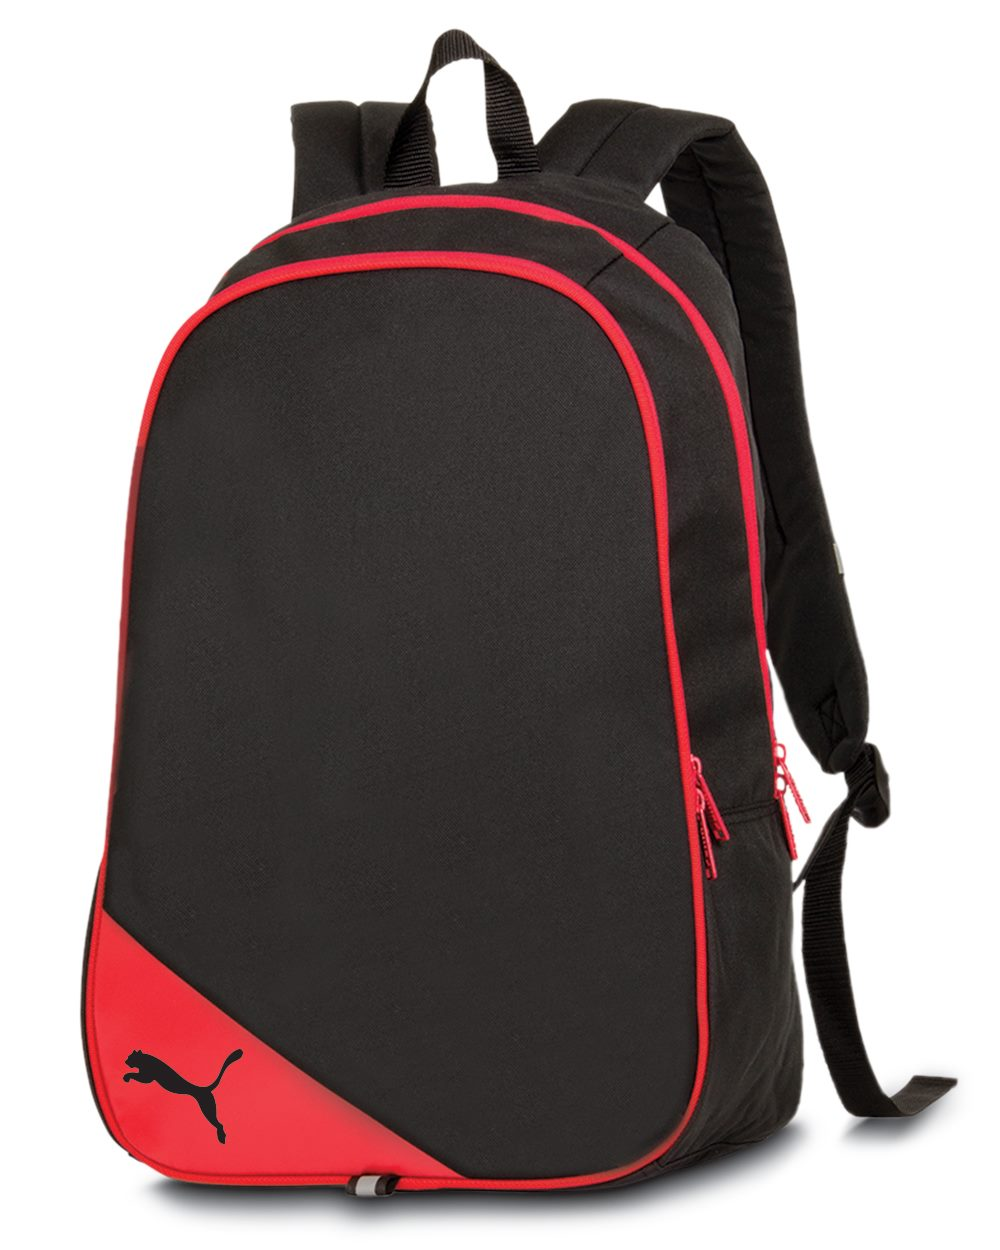 PUMA PSC1002 - 28L Graphic Backpack